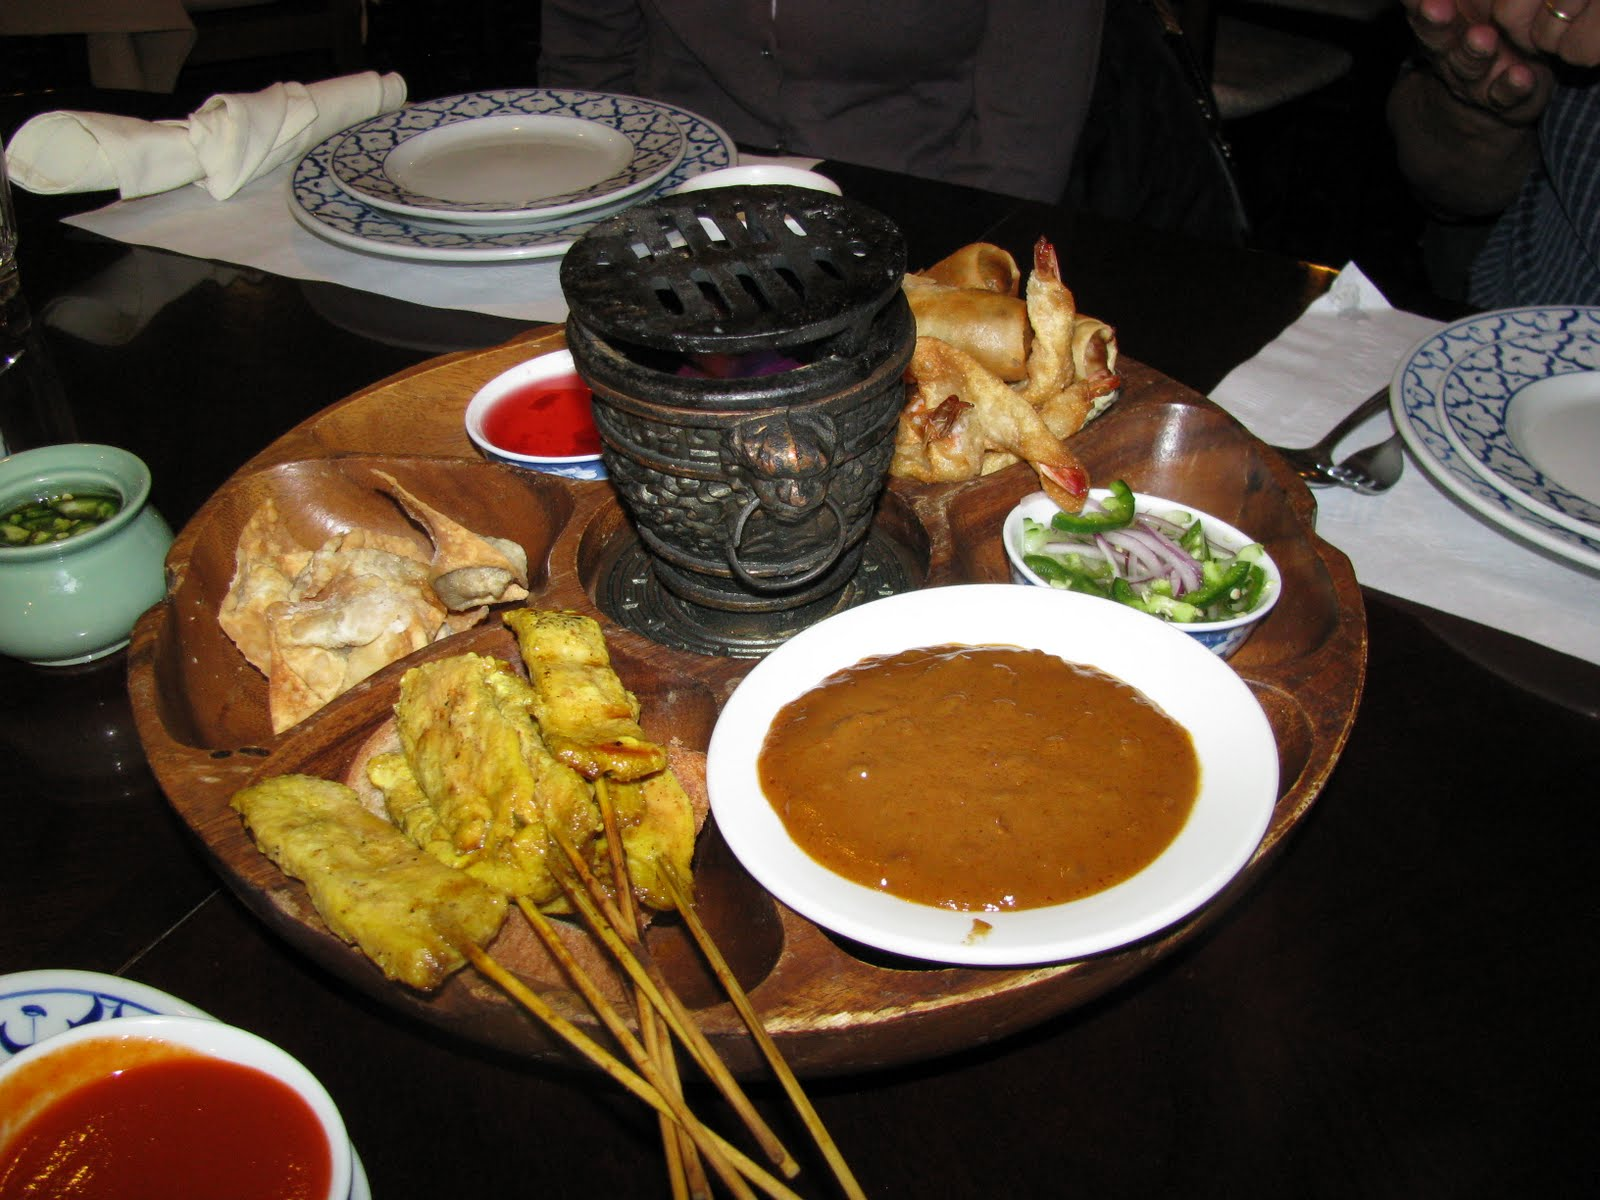 Corrie Food: Thai Royal Orchid is Amazing - Fresno, CA